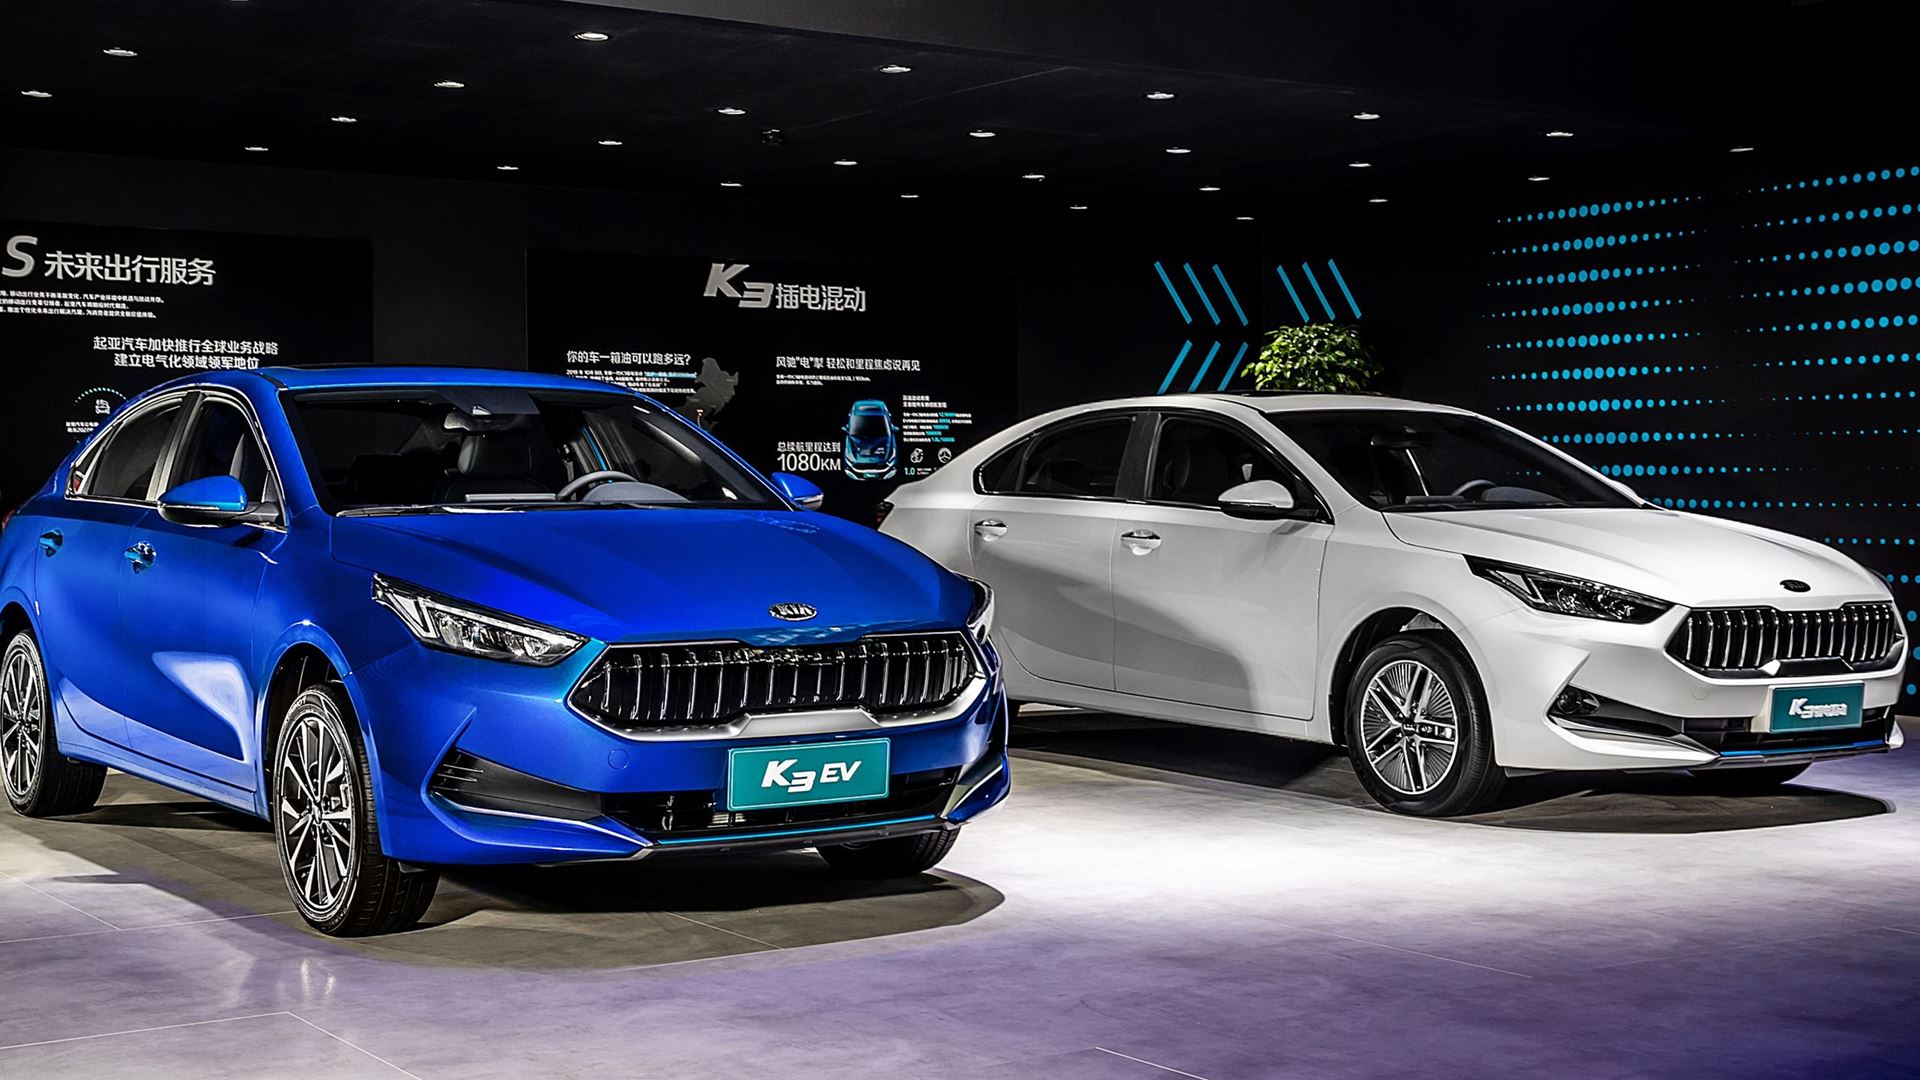 Kia Motors reveals new K5 and Carnival at Auto China 2020 - Image 1